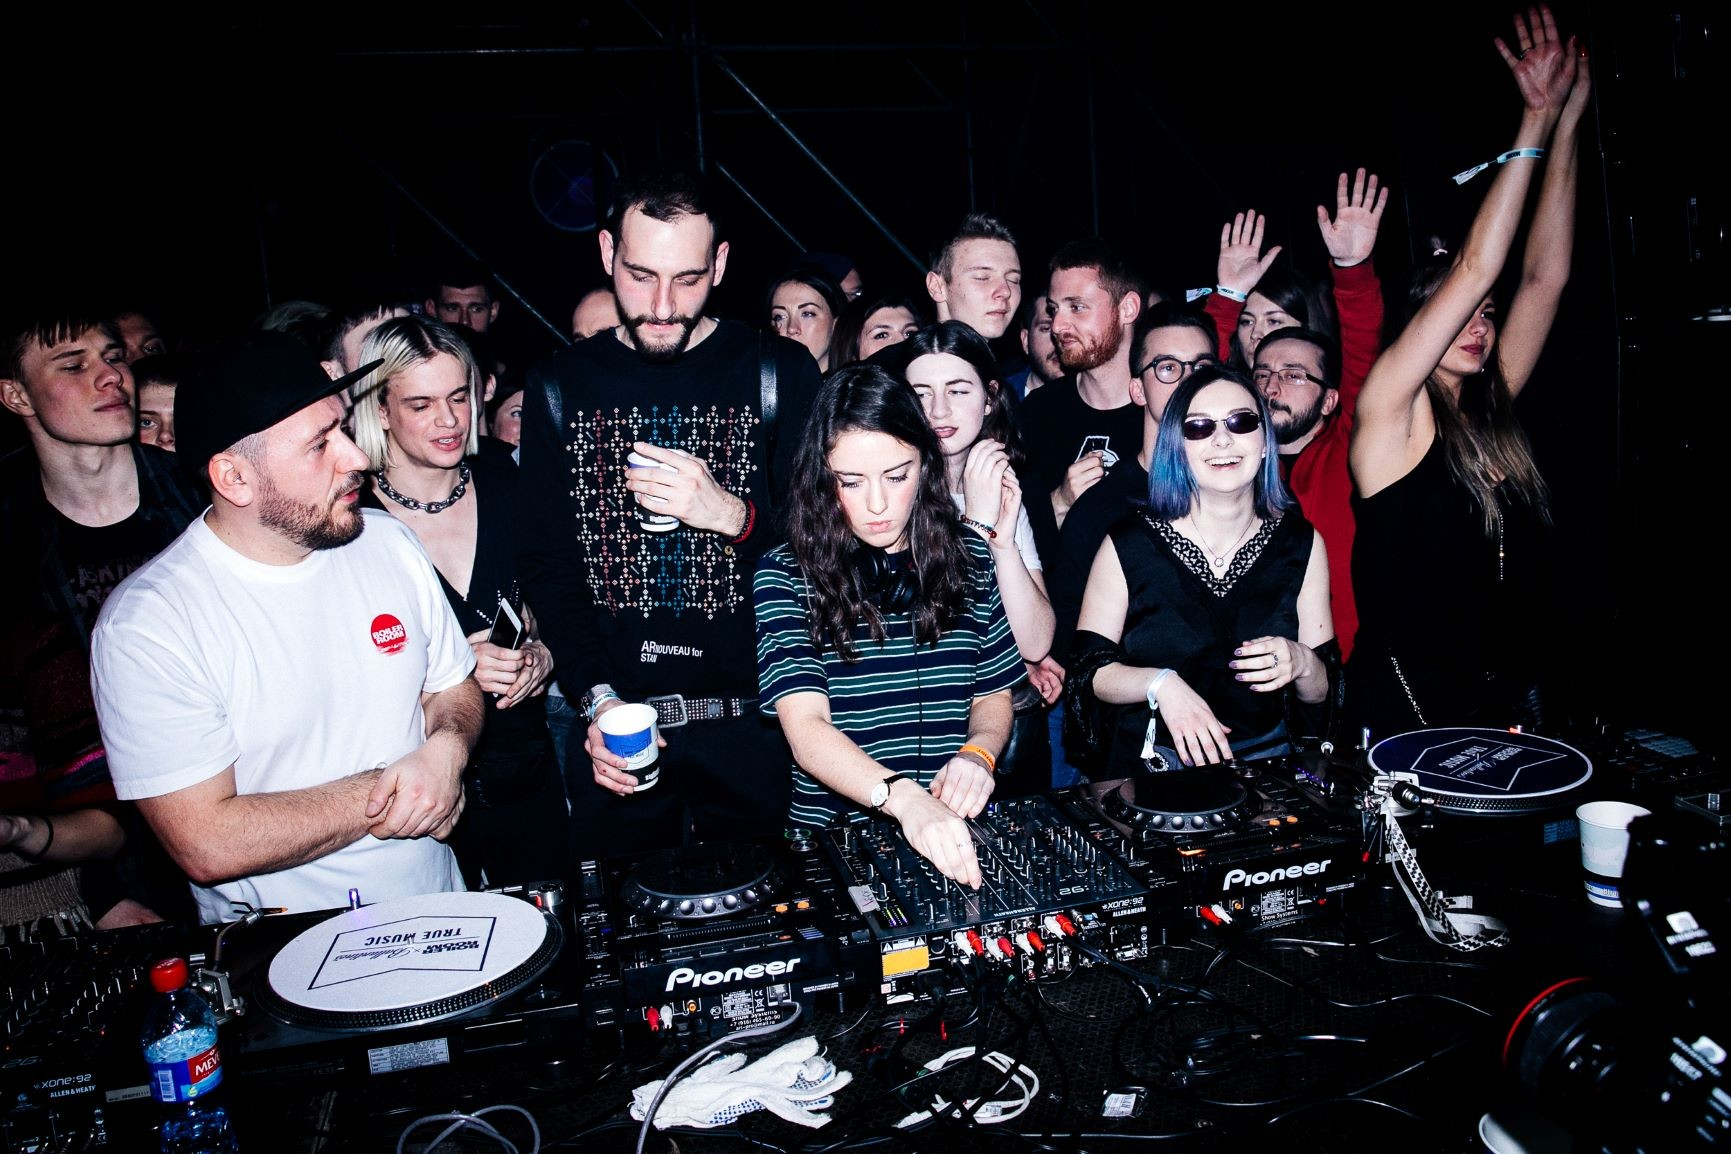 Ballantines Boiler Room True Music Hybrid Sounds Russia Orla